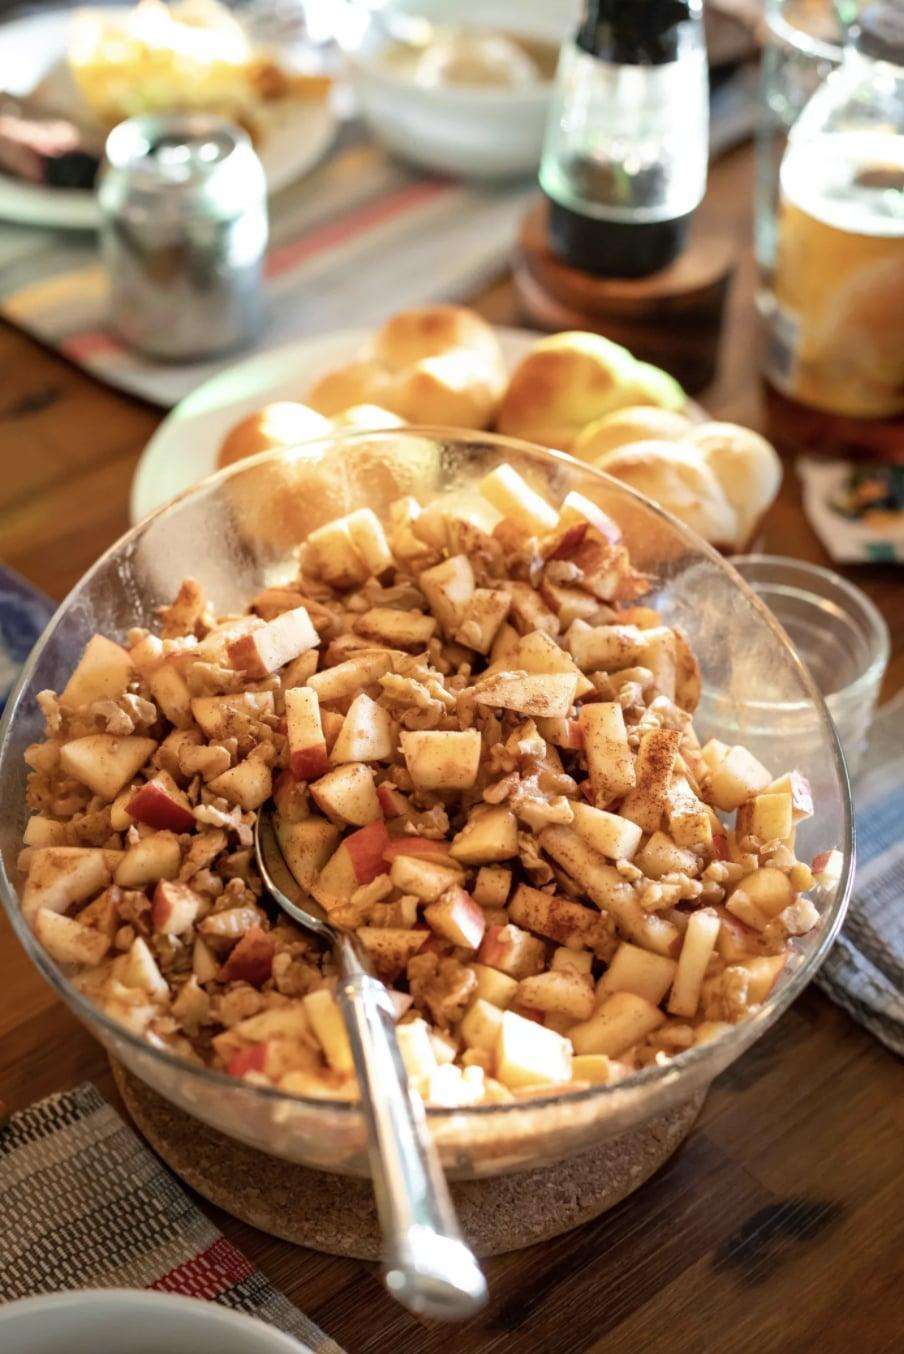 "<p>A traditional meal served as a Passover Seder dish, charoset has been a popular dish for fellow New Yorkers this month. Apples, walnuts, and grape juice mix together to make a lively meal in no time.</p> <p><strong>Get the recipe</strong>: <a href=""https://jamiegeller.com/recipes/ashkenaz-charoset/"" class=""link rapid-noclick-resp"" rel=""nofollow noopener"" target=""_blank"" data-ylk=""slk:Ashkenazi charoset"">Ashkenazi charoset</a></p>"